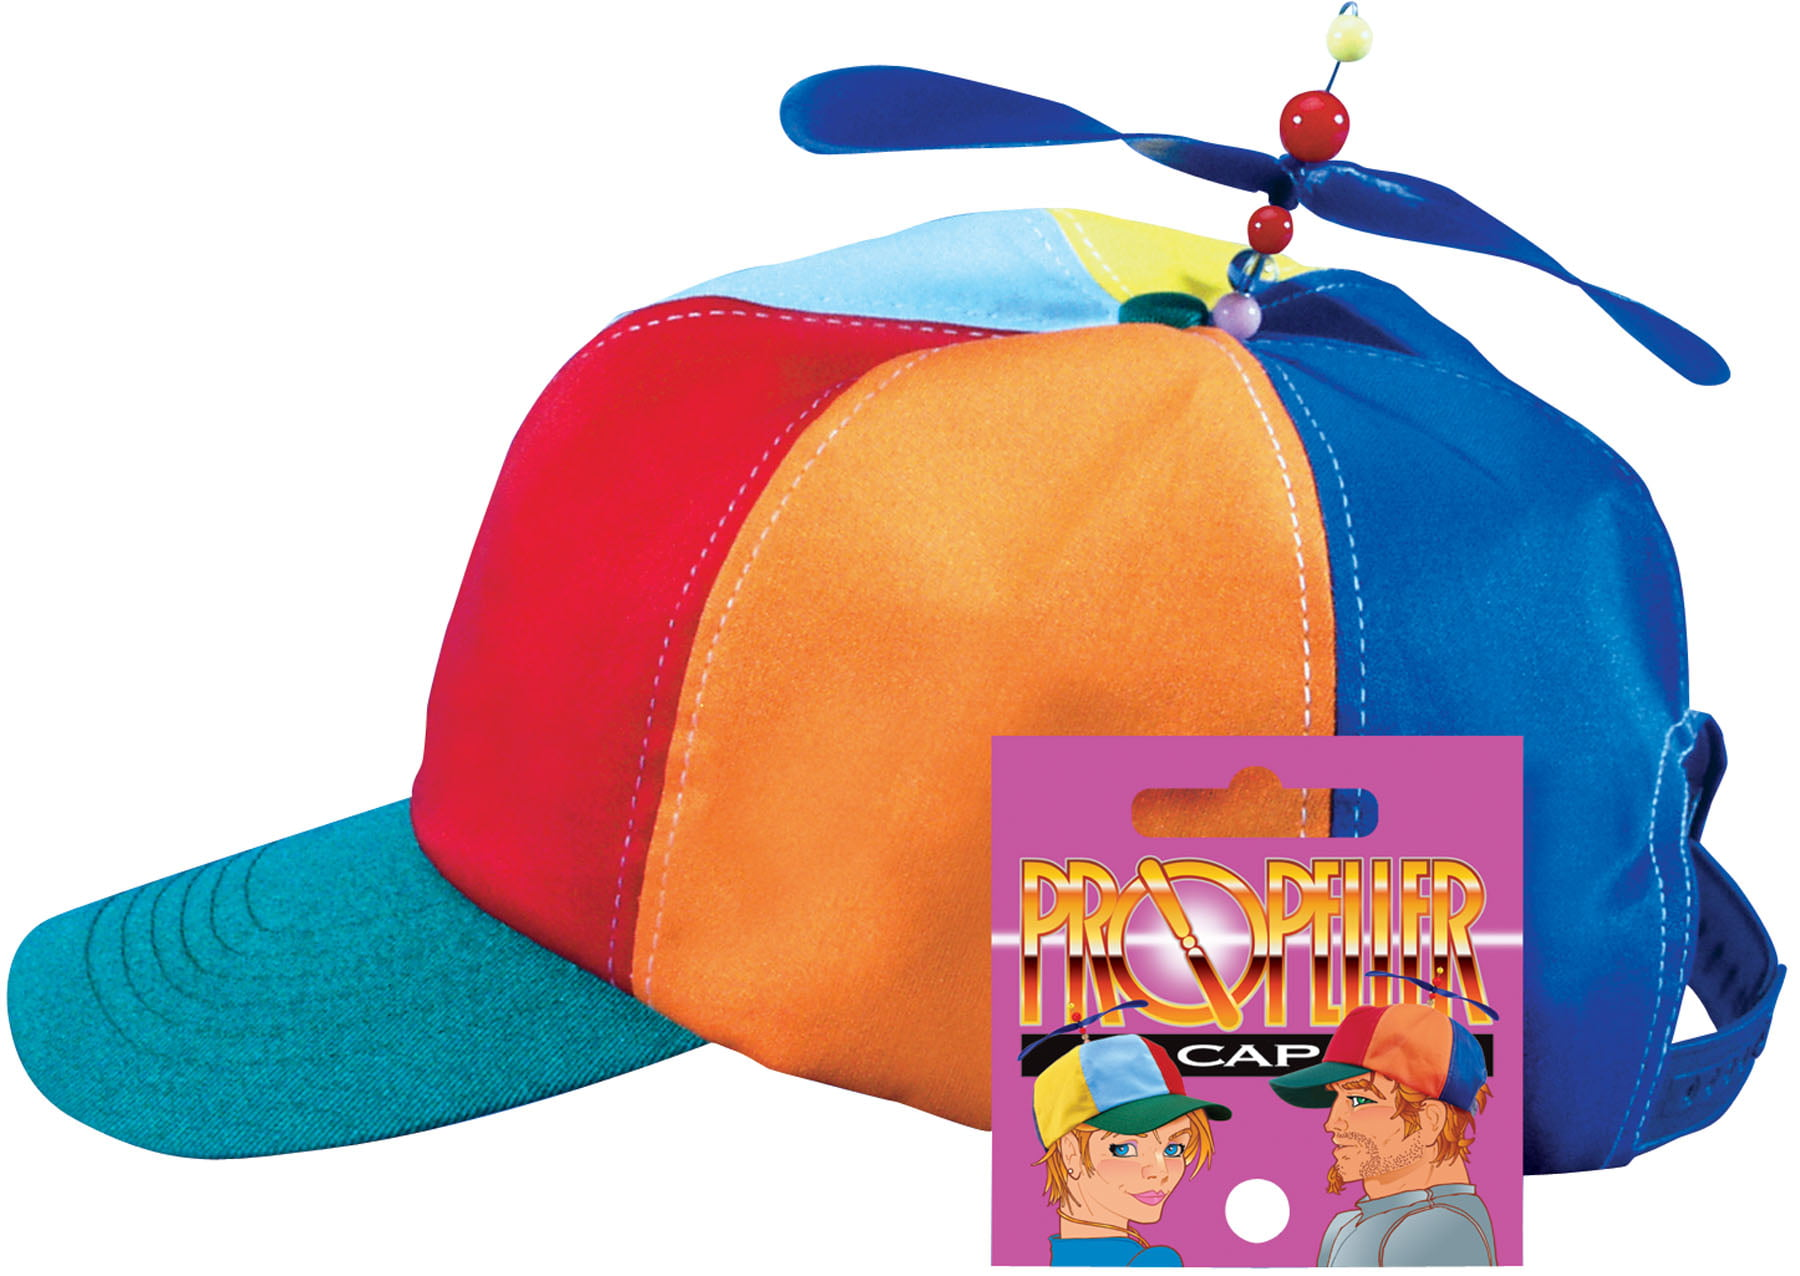 97f7fd000b0cc Star Power Baseball Cap with Propeller Funny Party Hat